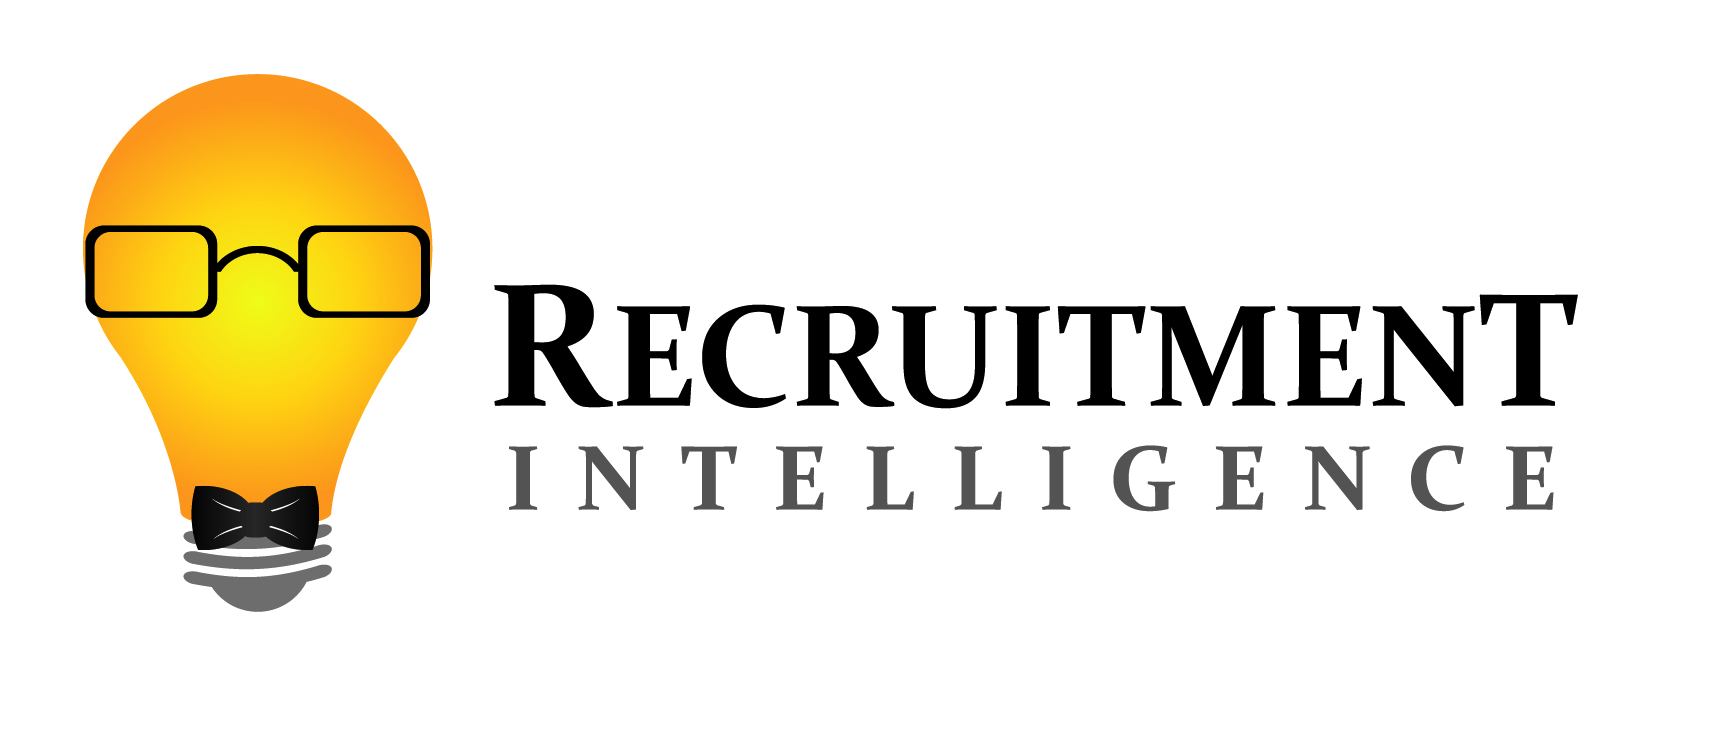 Recruitment Intelligence, Staffing Agencies, Recruiting Agencies, Staffing Agency, Recruiting Agency, Recruitment Firms, Executive Search Firms